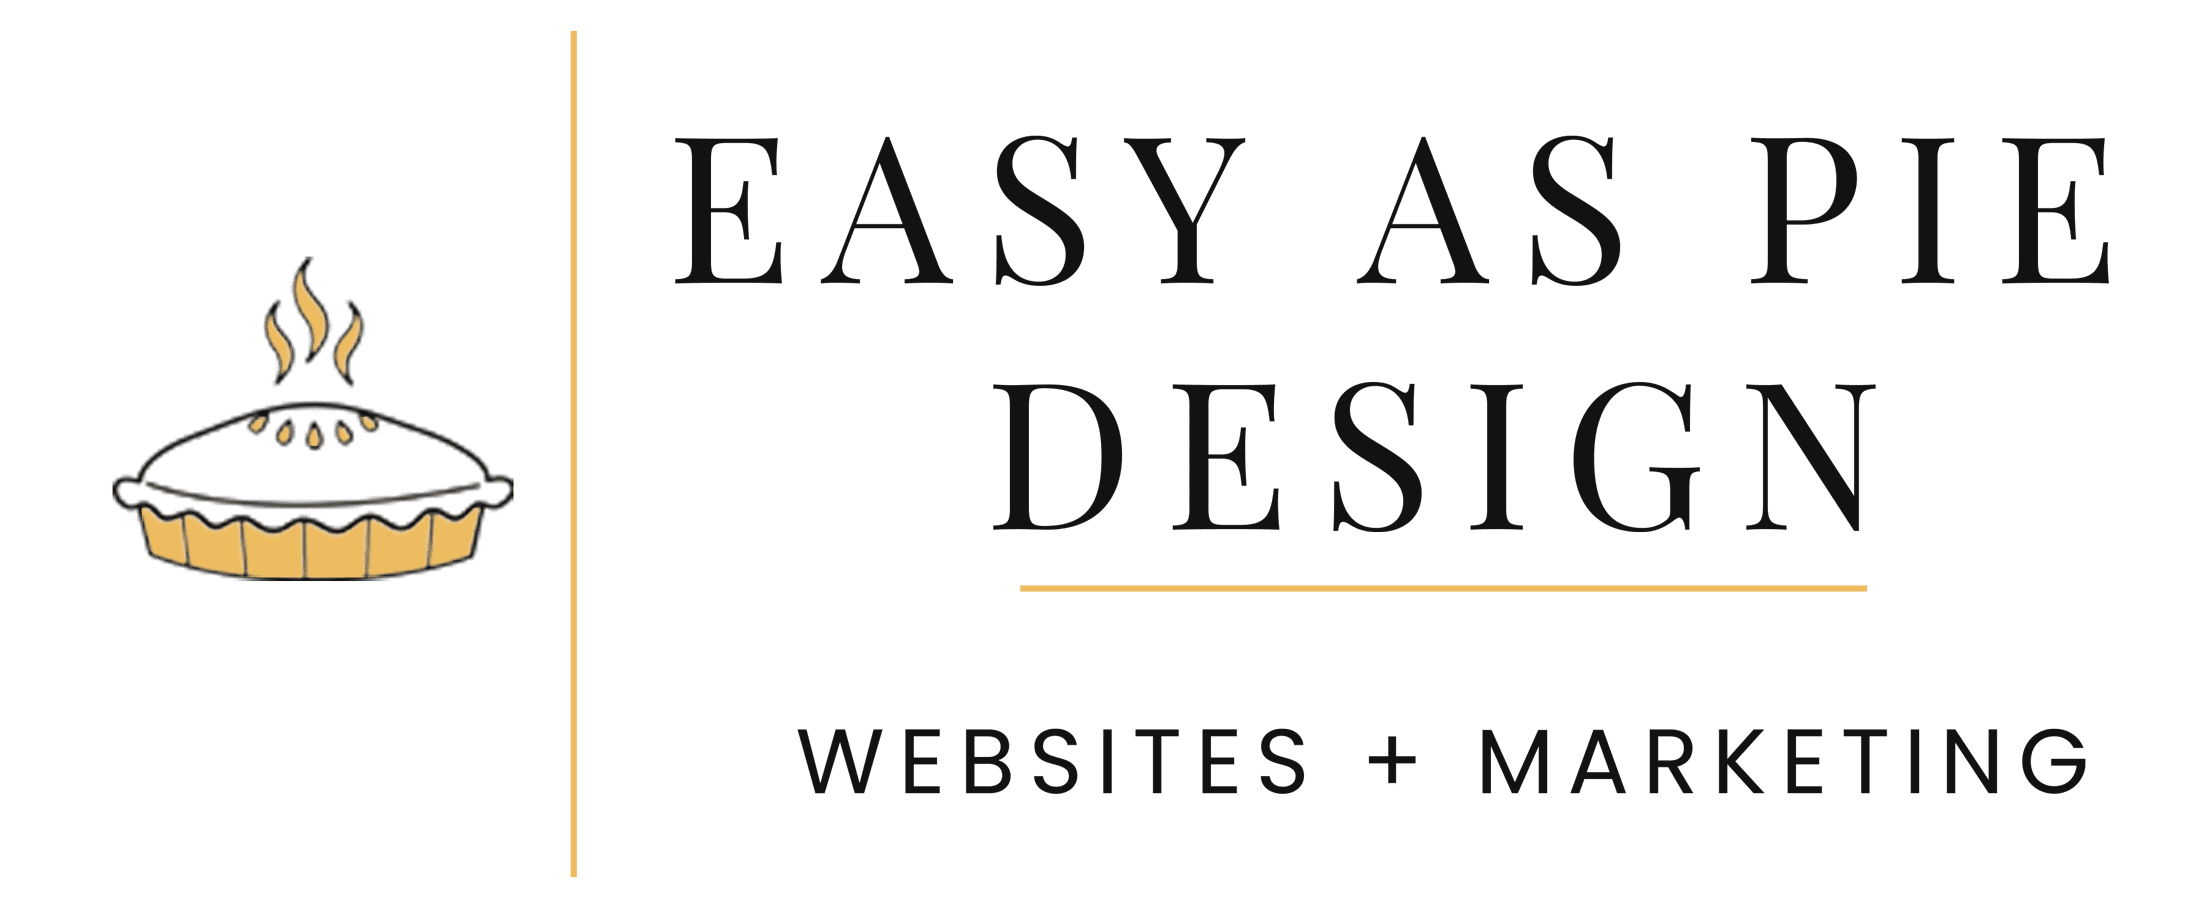 Easy as Pie Design